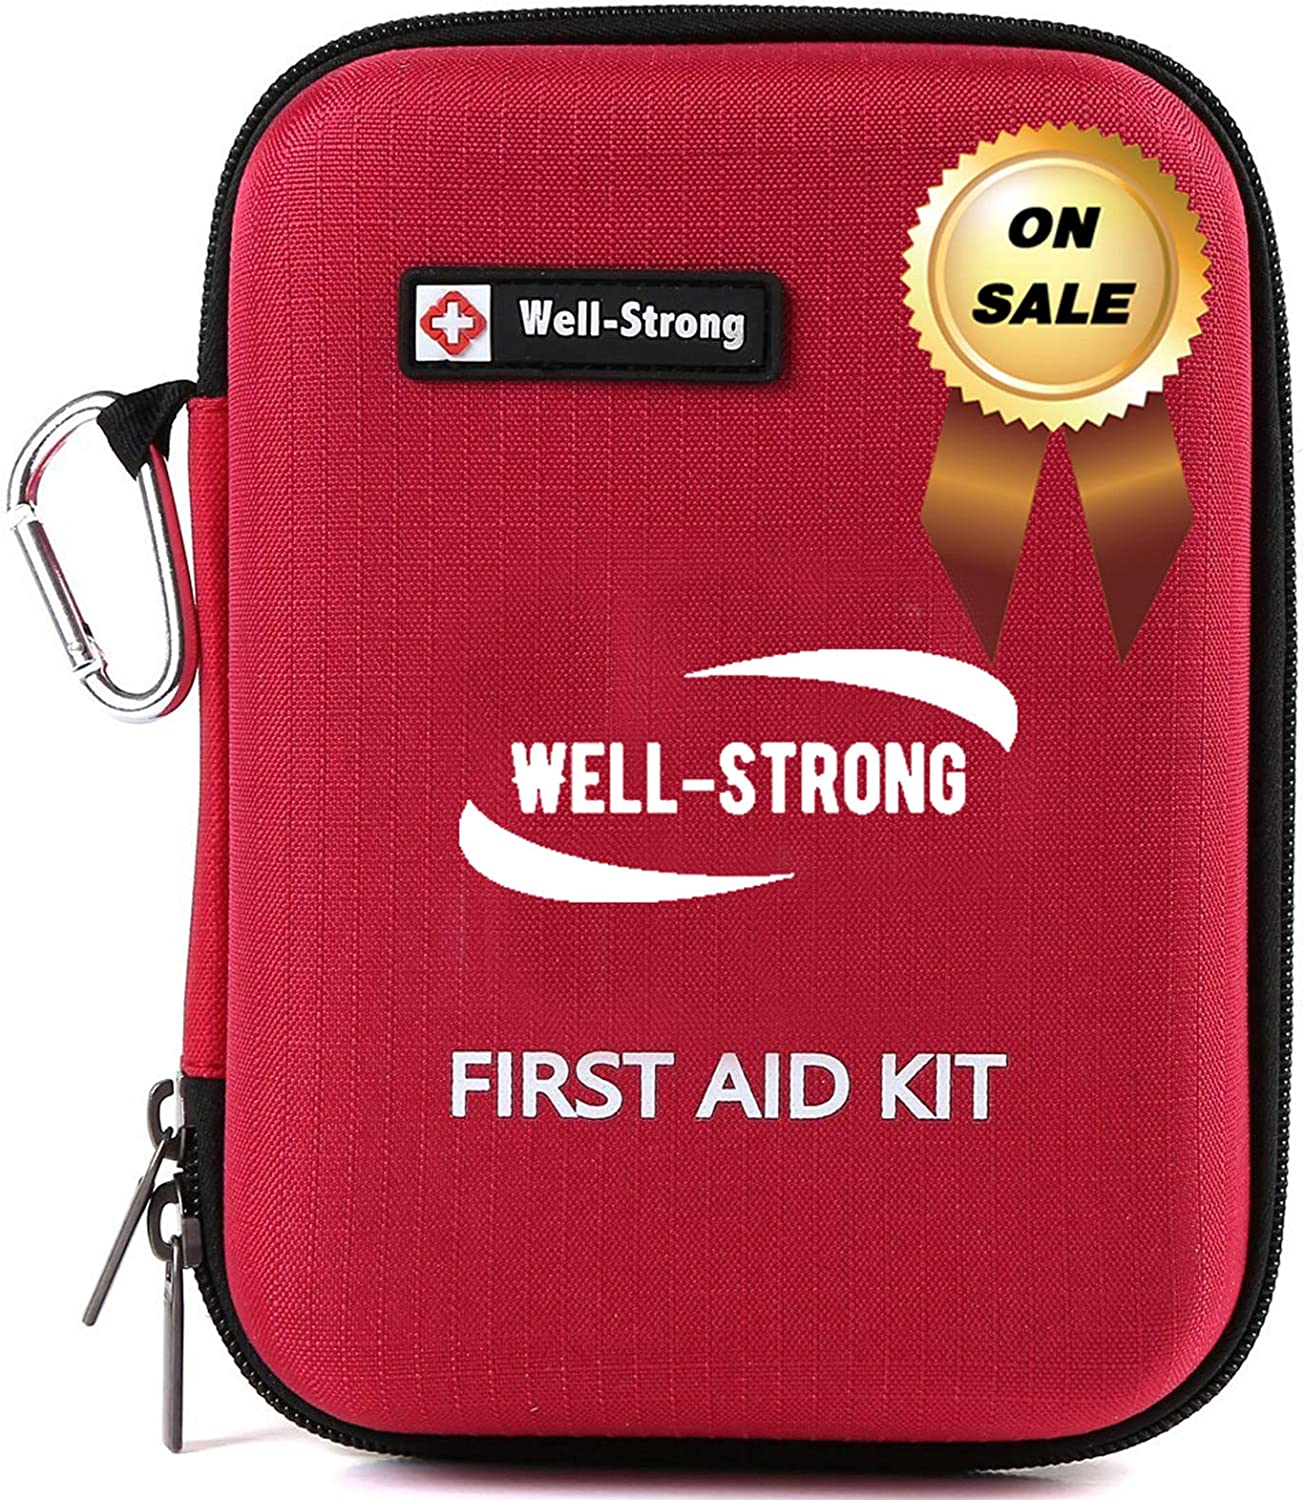 WELL-STRONG First Aid Kit 128 Pieces First Aid Kit Emergency kit for Home, Car, School, Office, Sports, Travel, Camping or Any Other Outdoors Activities